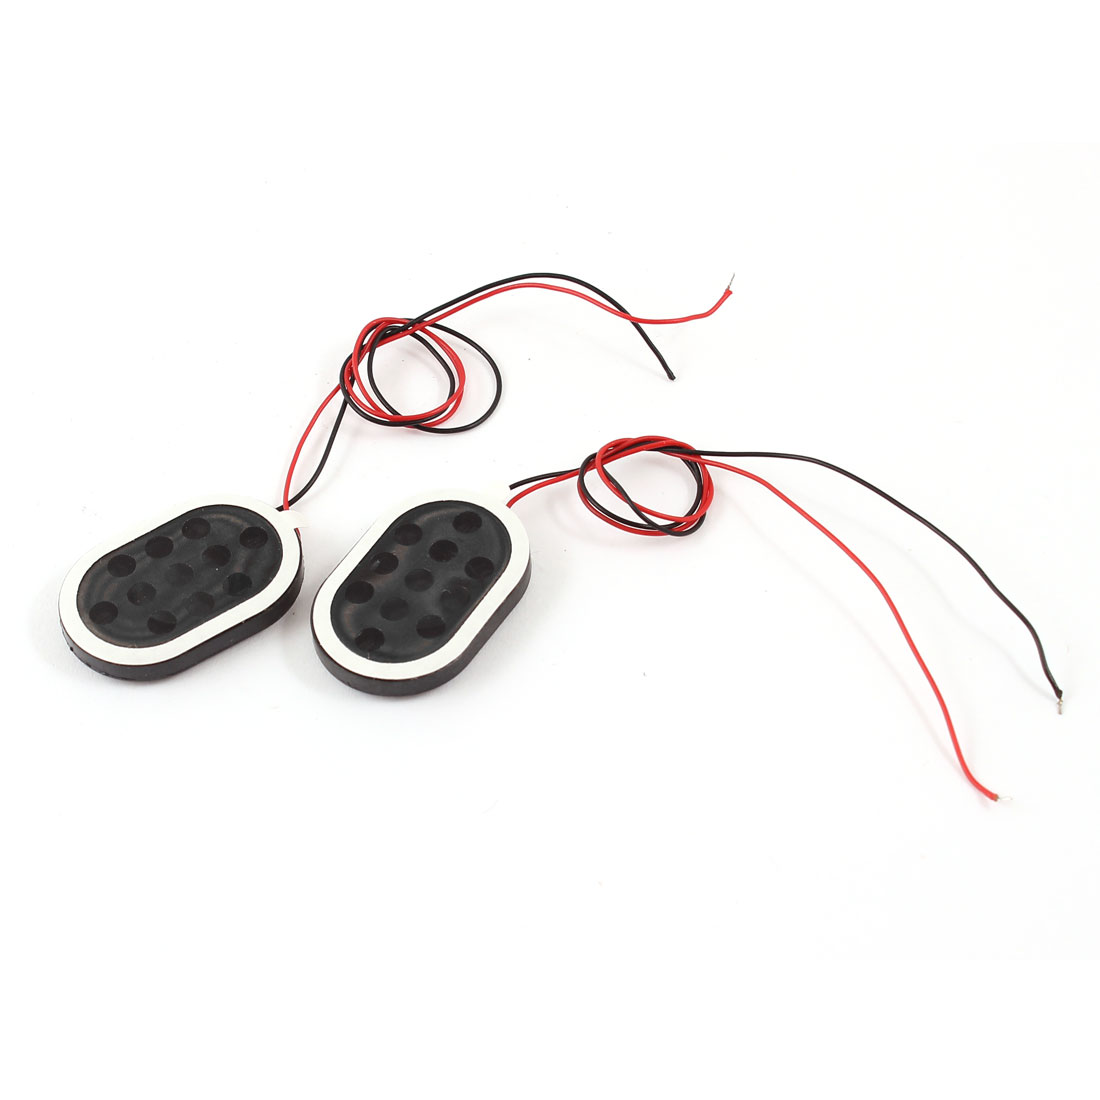 1.5W 8 Ohm Plastic Housing Oval Magnet GPS Speaker Loudspeaker 2Pcs